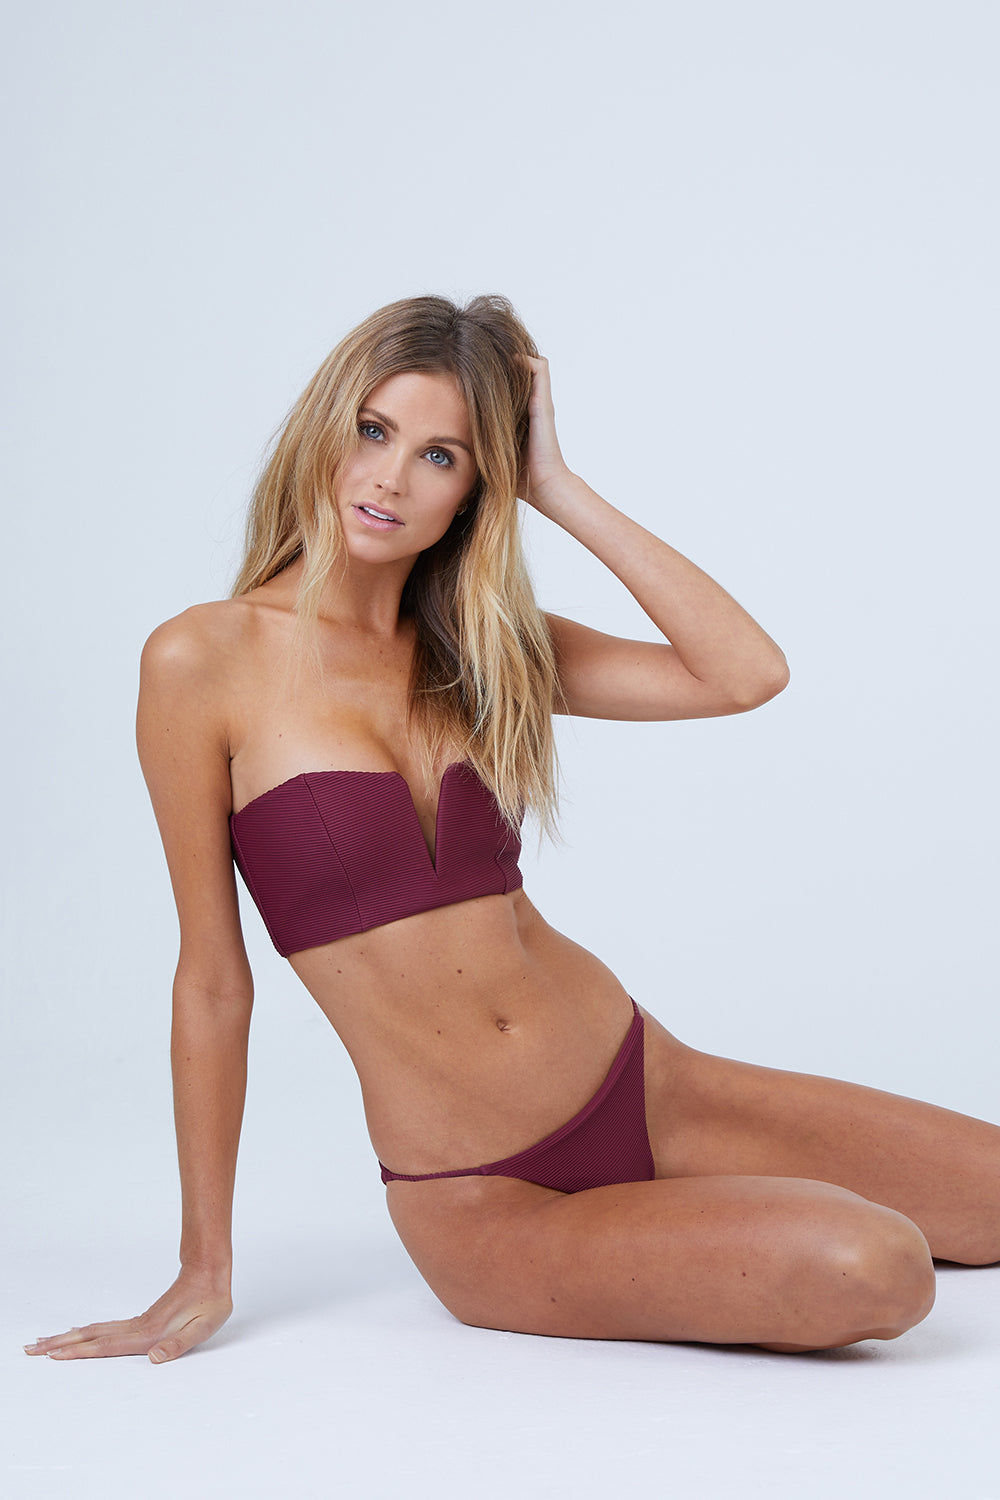 ONIA Rochelle Thin Side Strap Bikini Bottom - Maroon Bikini Bottom | Maroon| Onia Rochelle Thin Side Strap Bikini Bottom - Maroon Low Rise  Fixed Thin Side Straps  Cheeky Coverage  Ribbed Fabric  Front View